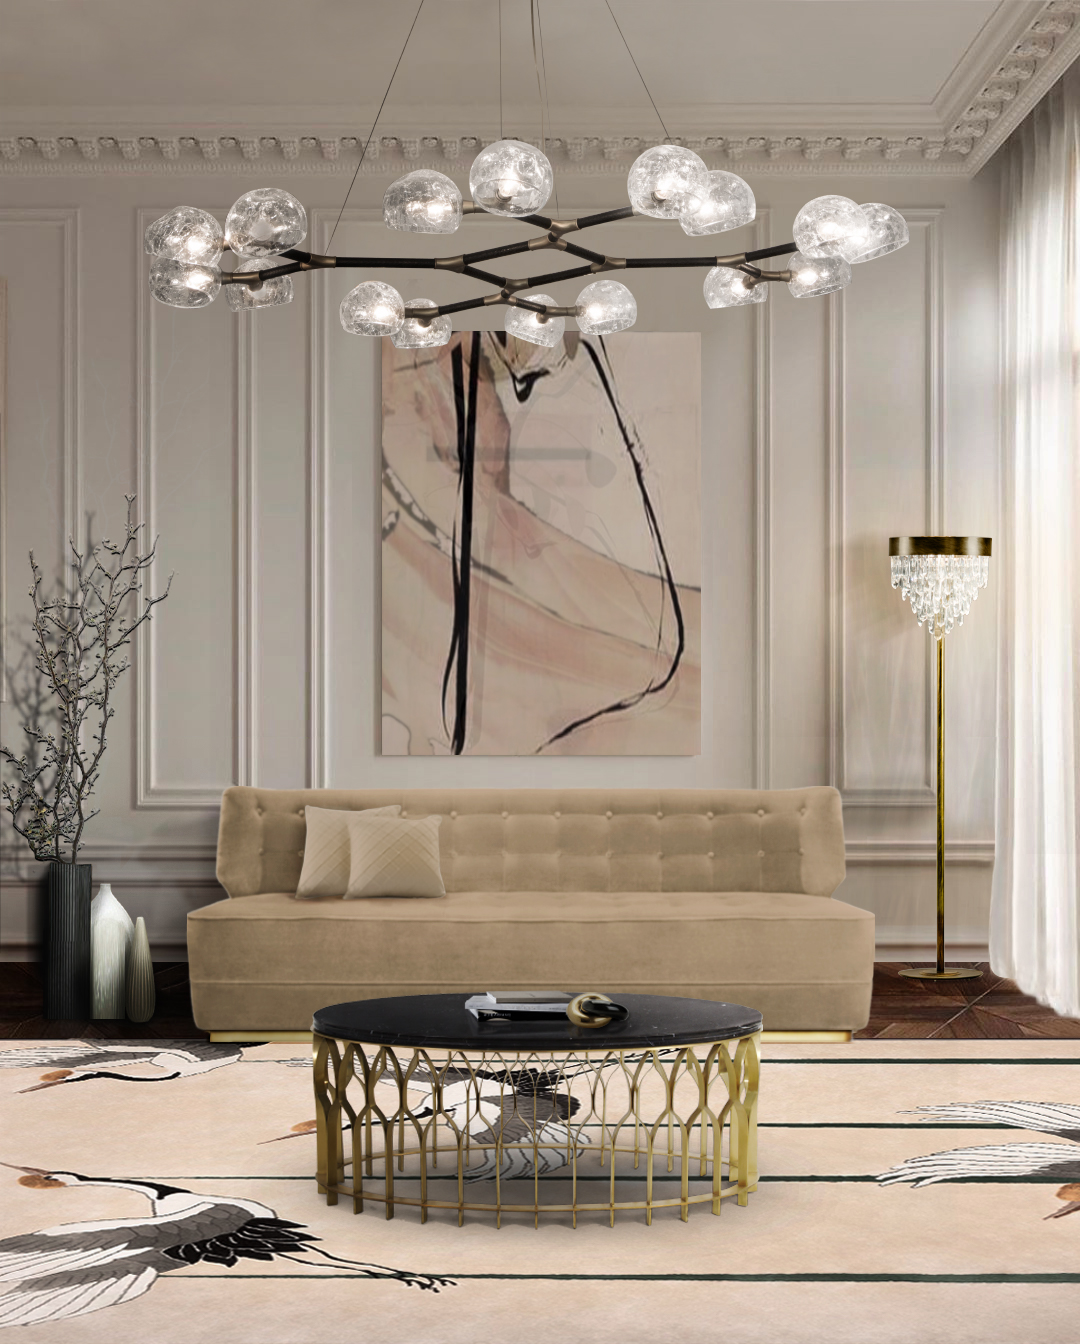 Incredible Sofas for Outstanding Living Rooms incredible sofasIncredible Sofas for Outstanding Living RoomsBB george sofa mecca center table horus suspension light